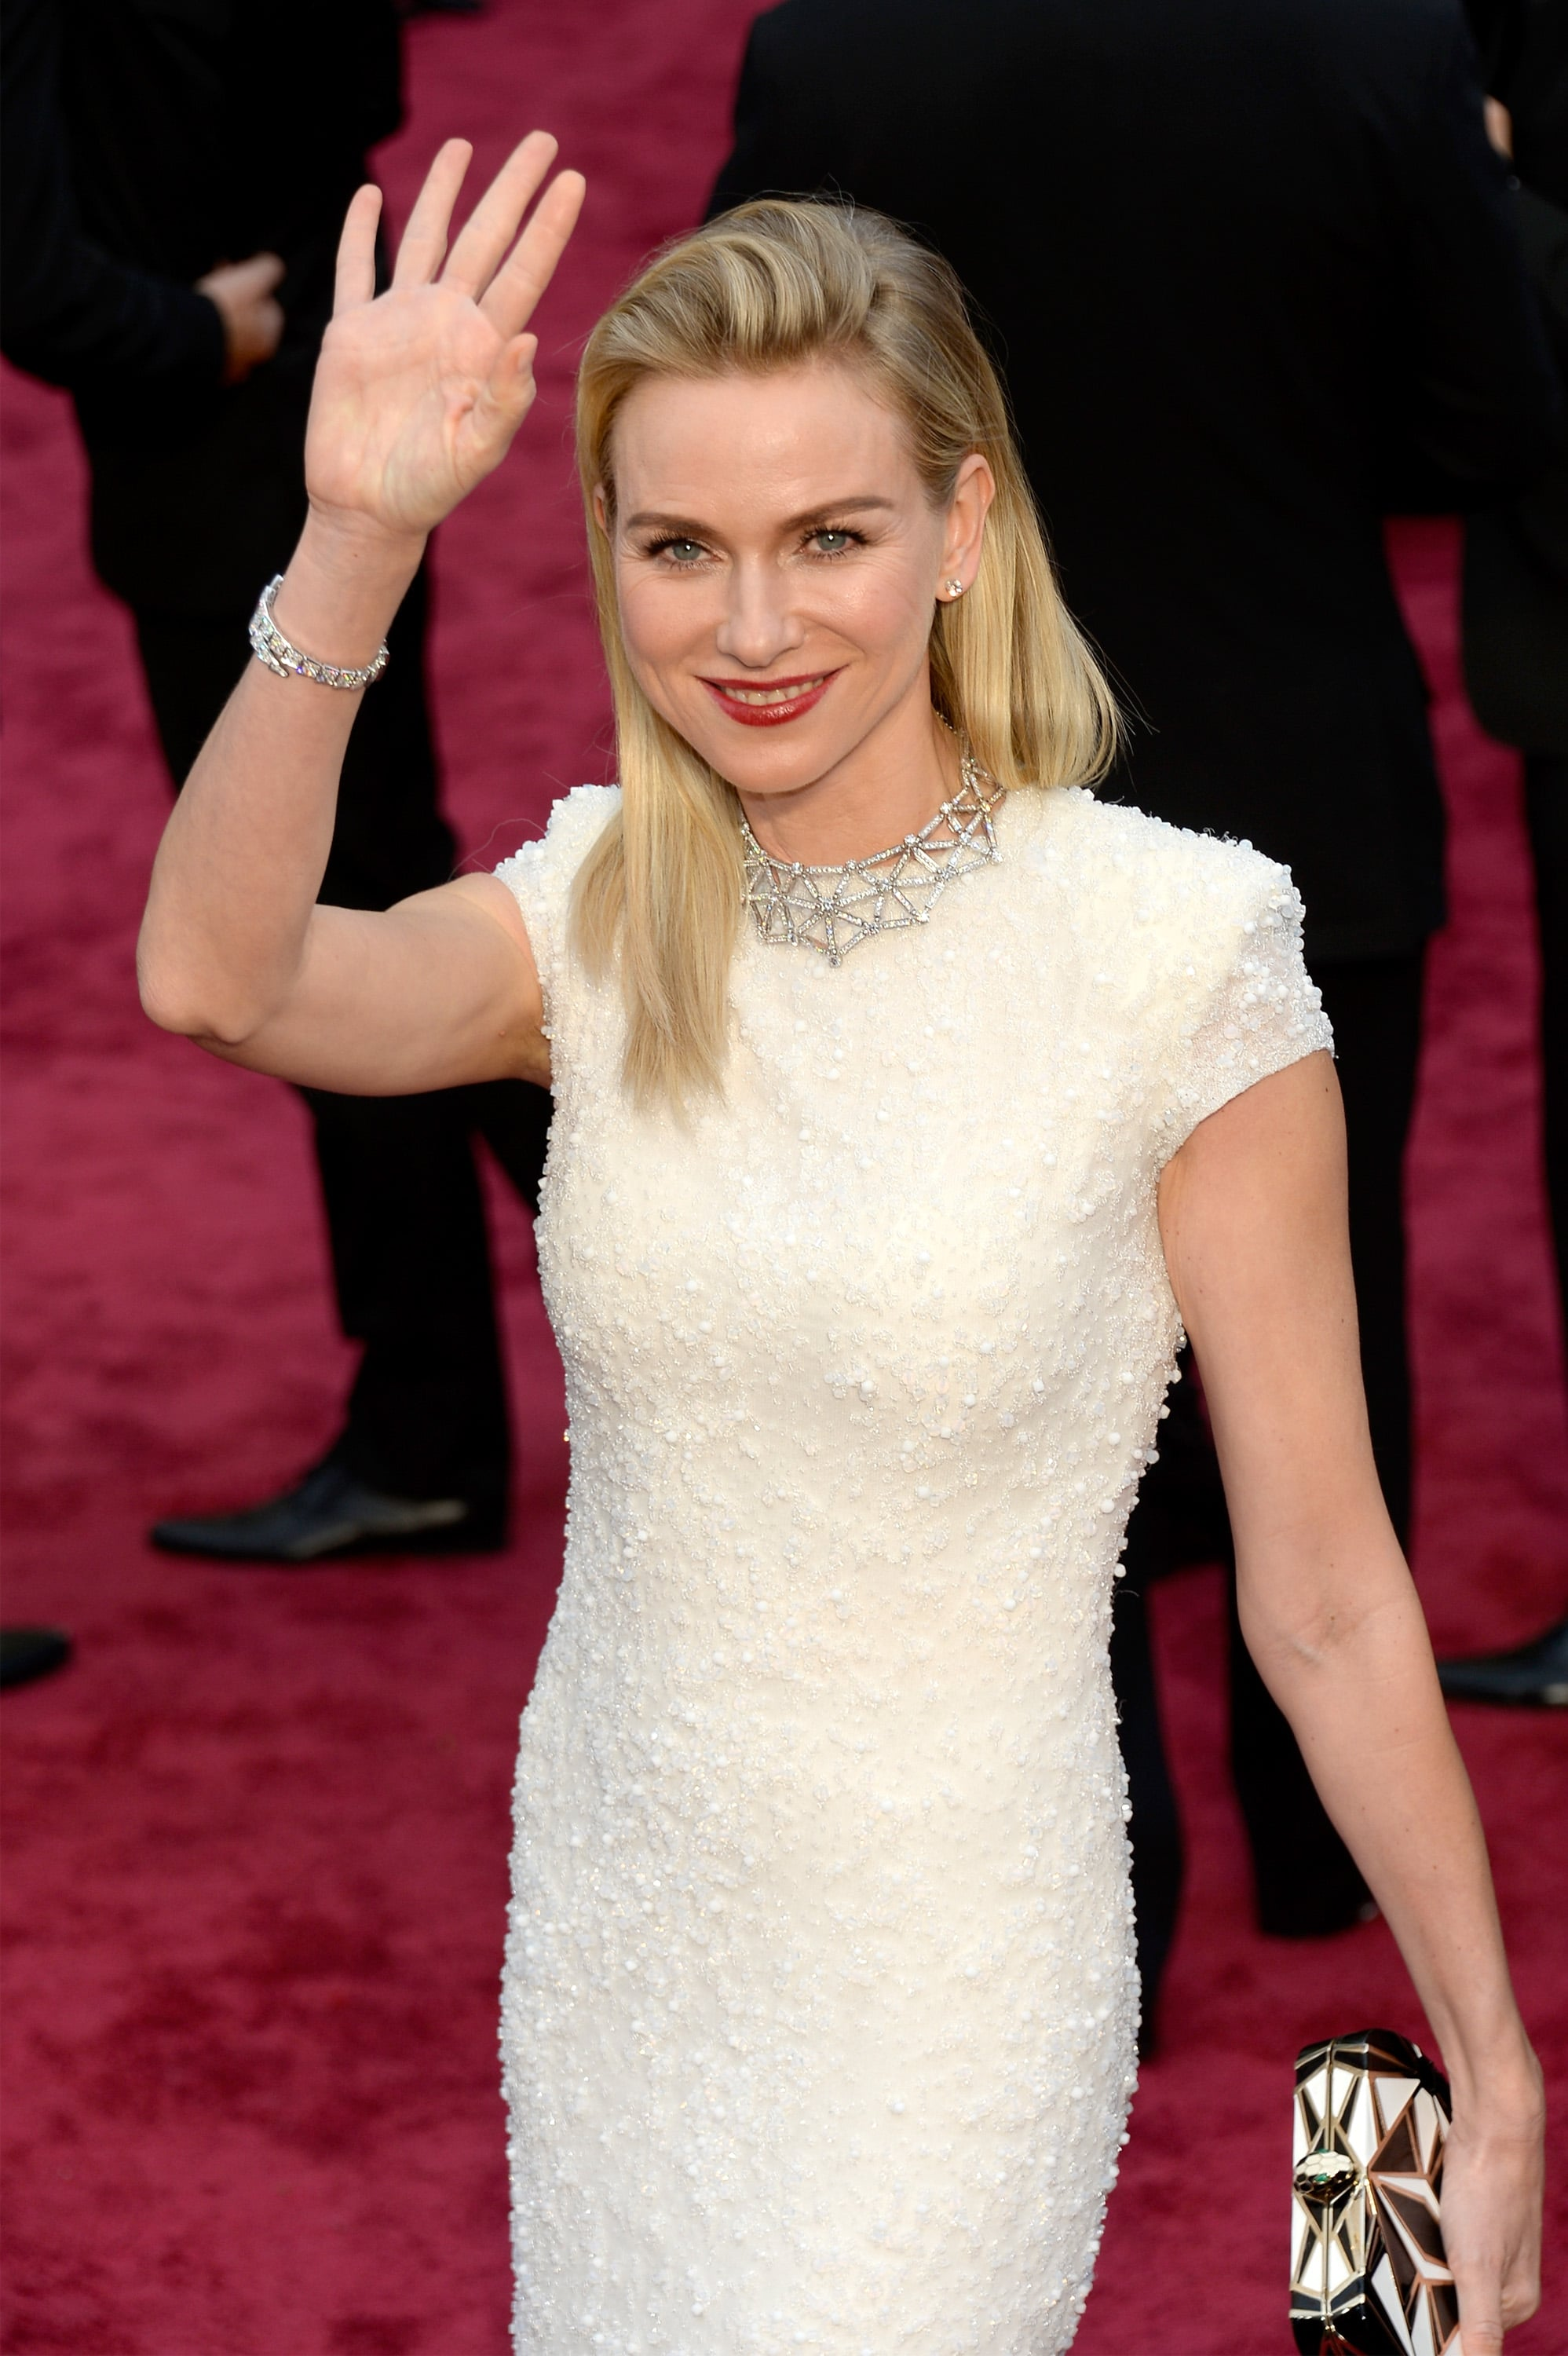 Naomi Watts Is All Smiles For Oscars Night